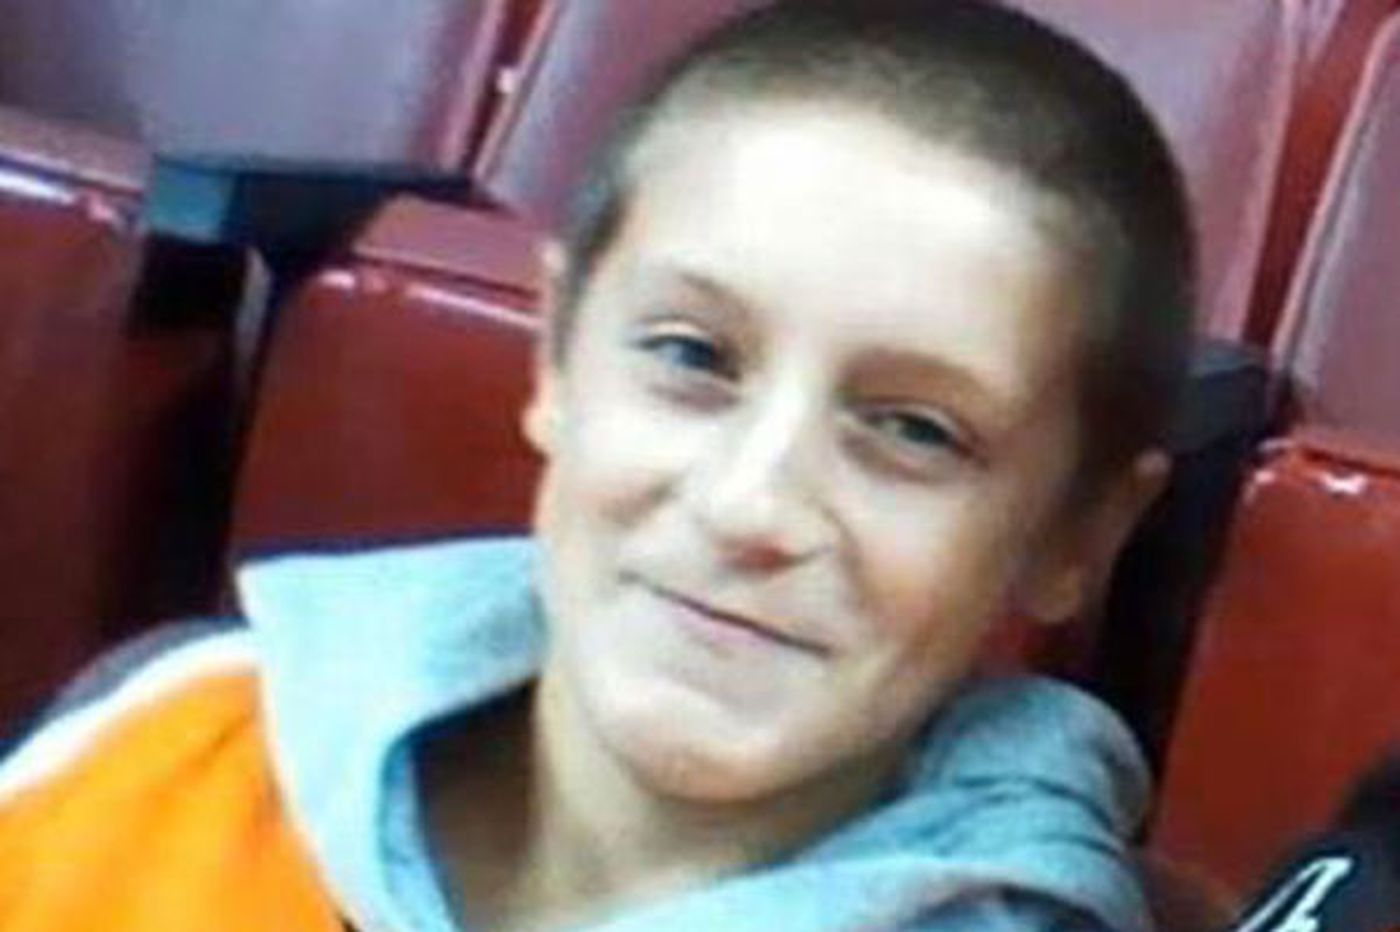 Boy, who family says was bullied, dies